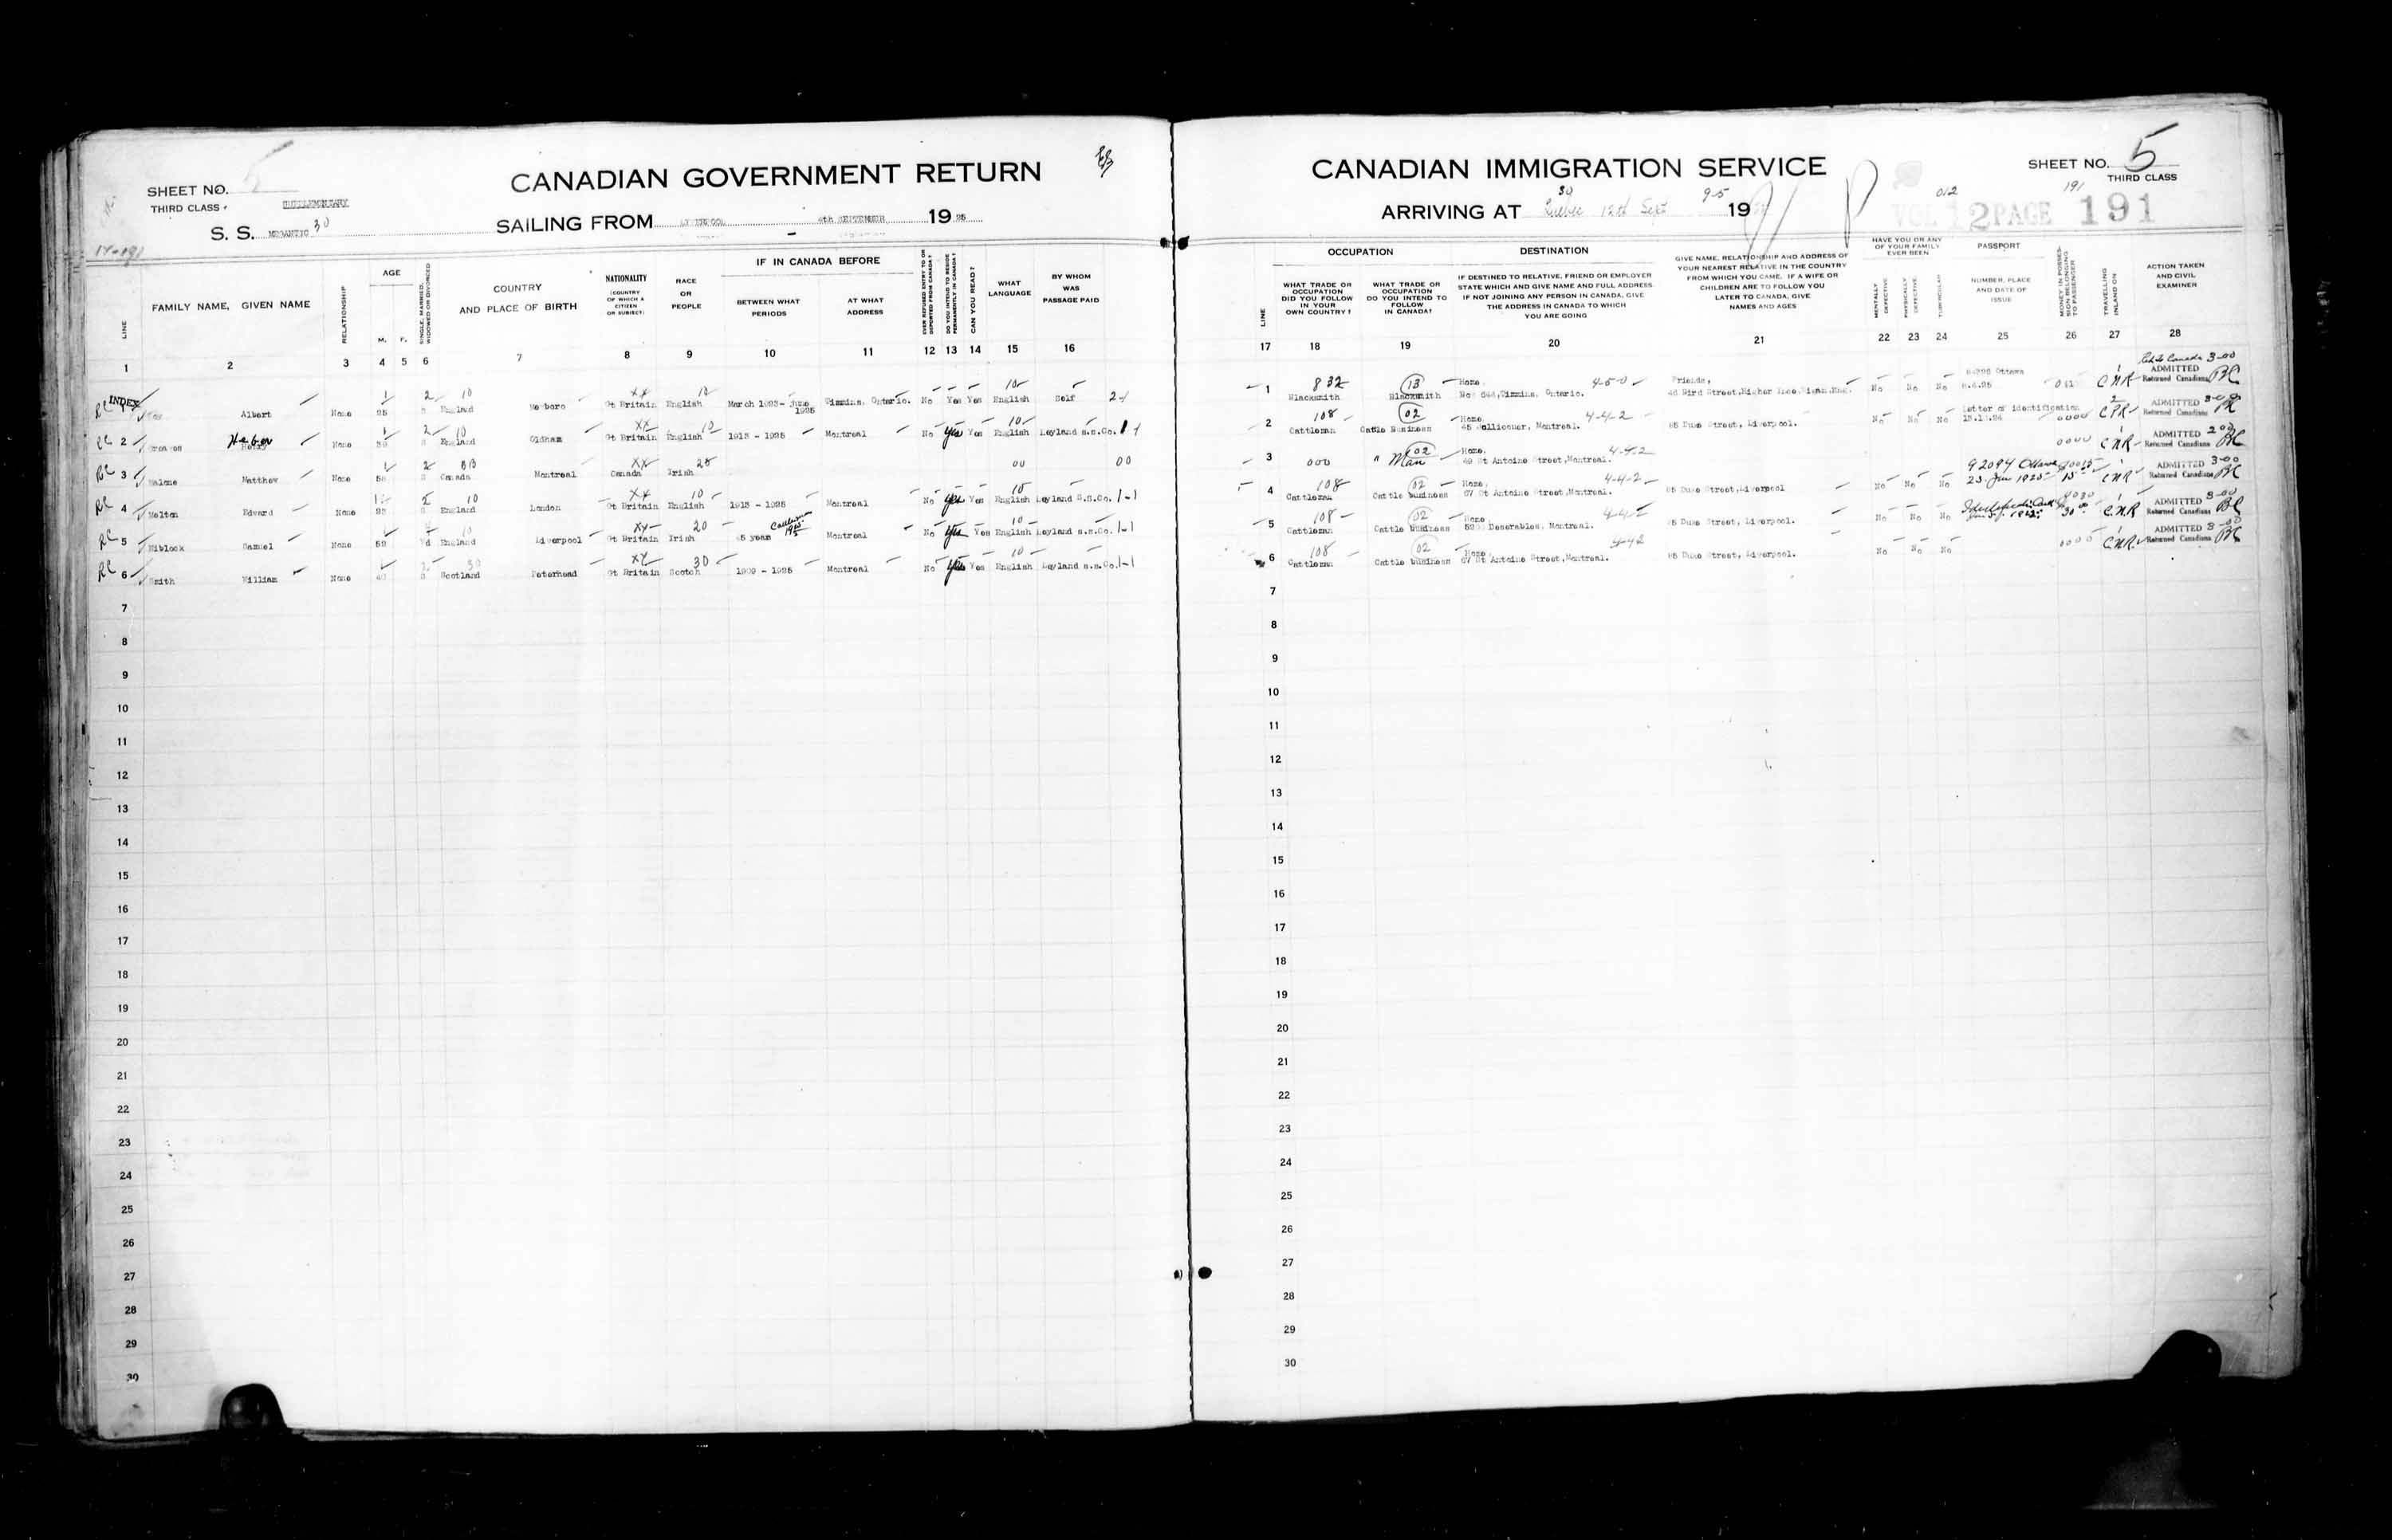 Title: Passenger Lists: Quebec City (1925-1935) - Mikan Number: 134839 - Microform: t-14718